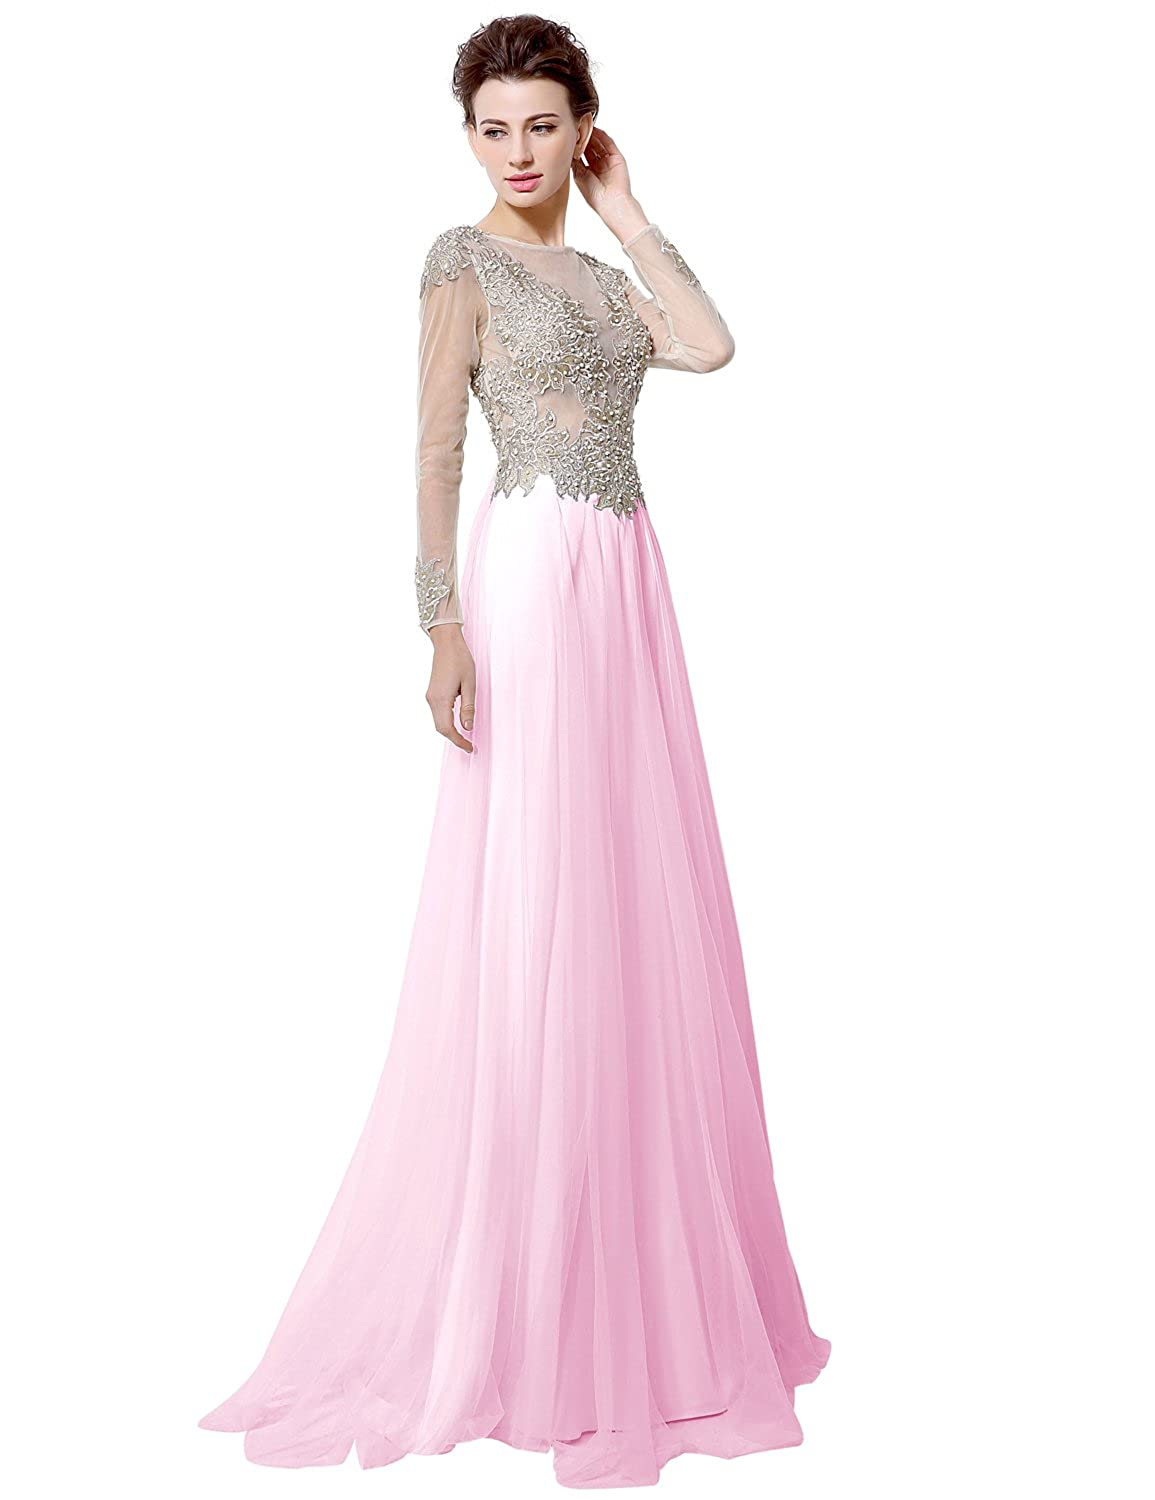 Sarahbridal Women's Long Sleeve See Through Prom Evening Dresses Wedding Party Gowns with Beaded Applique SLX041